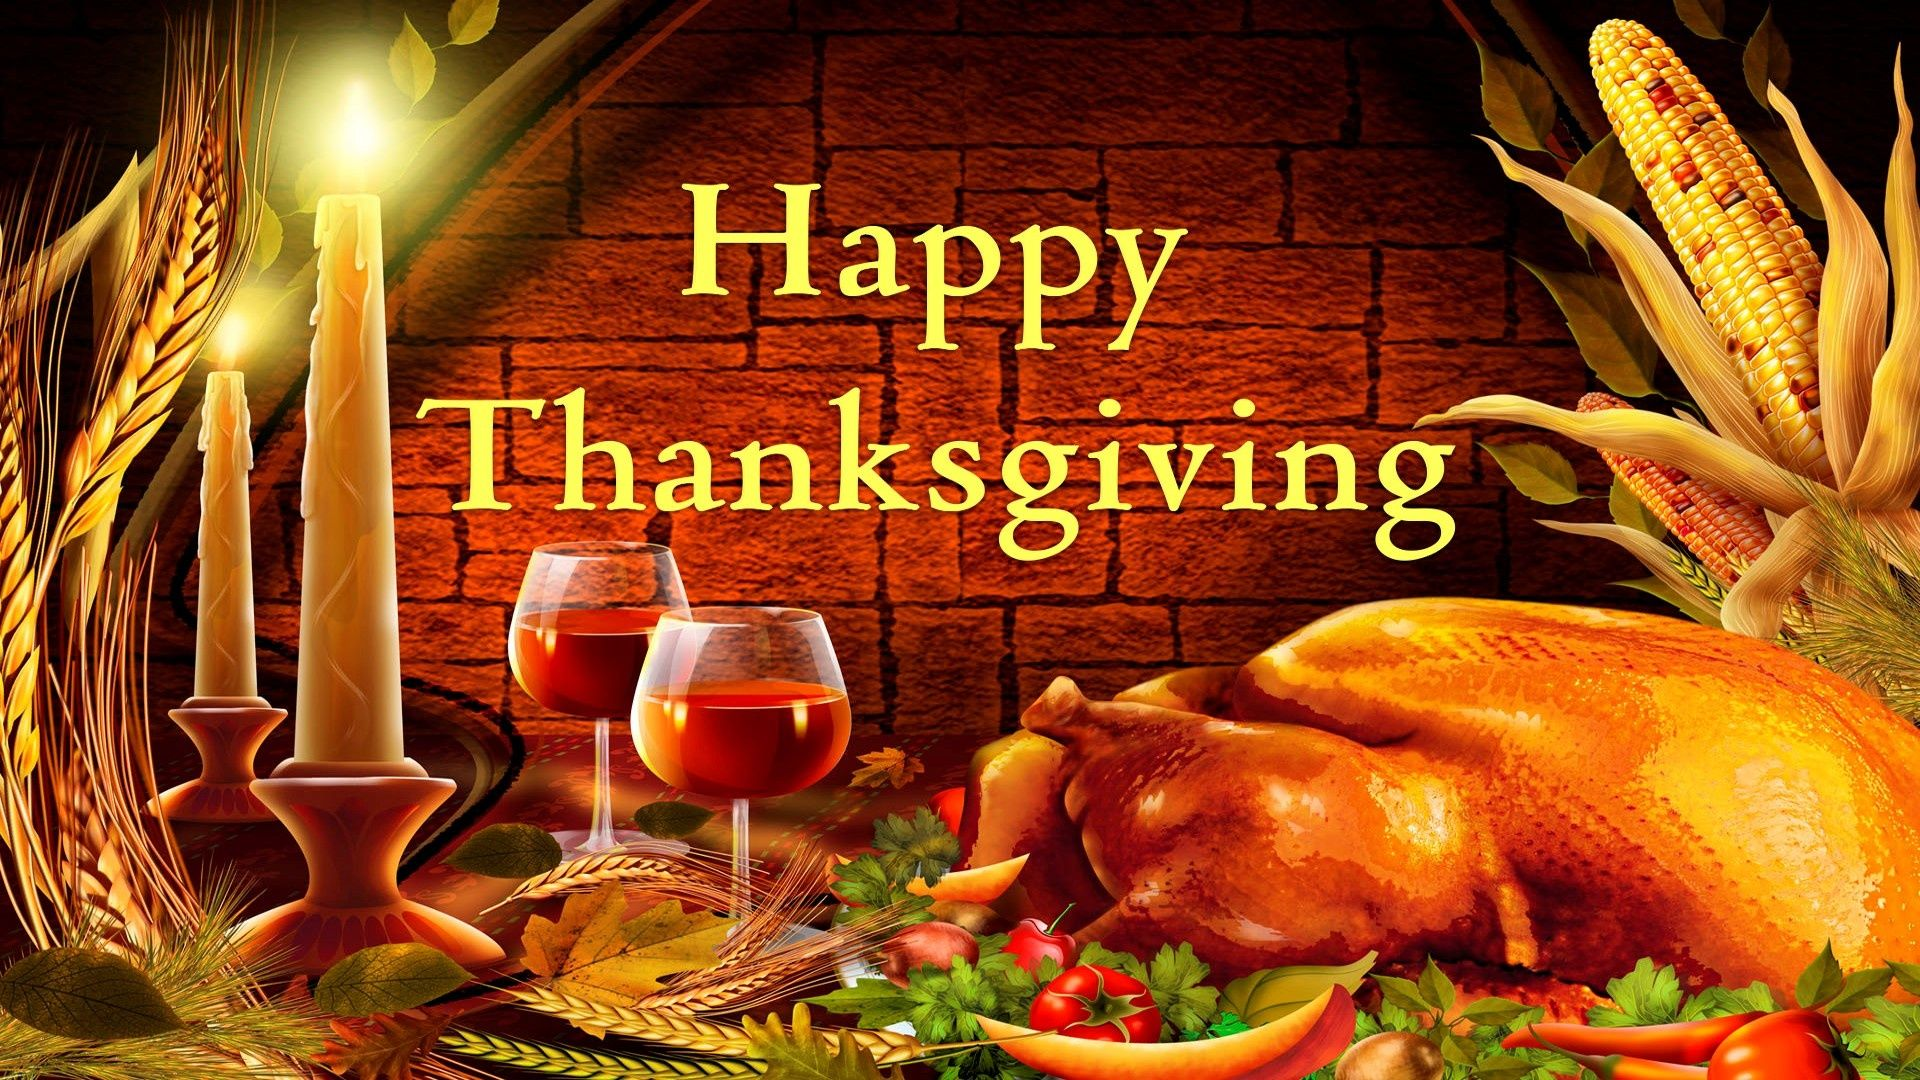 happy thanksgiving images Google Search Thanksgiving